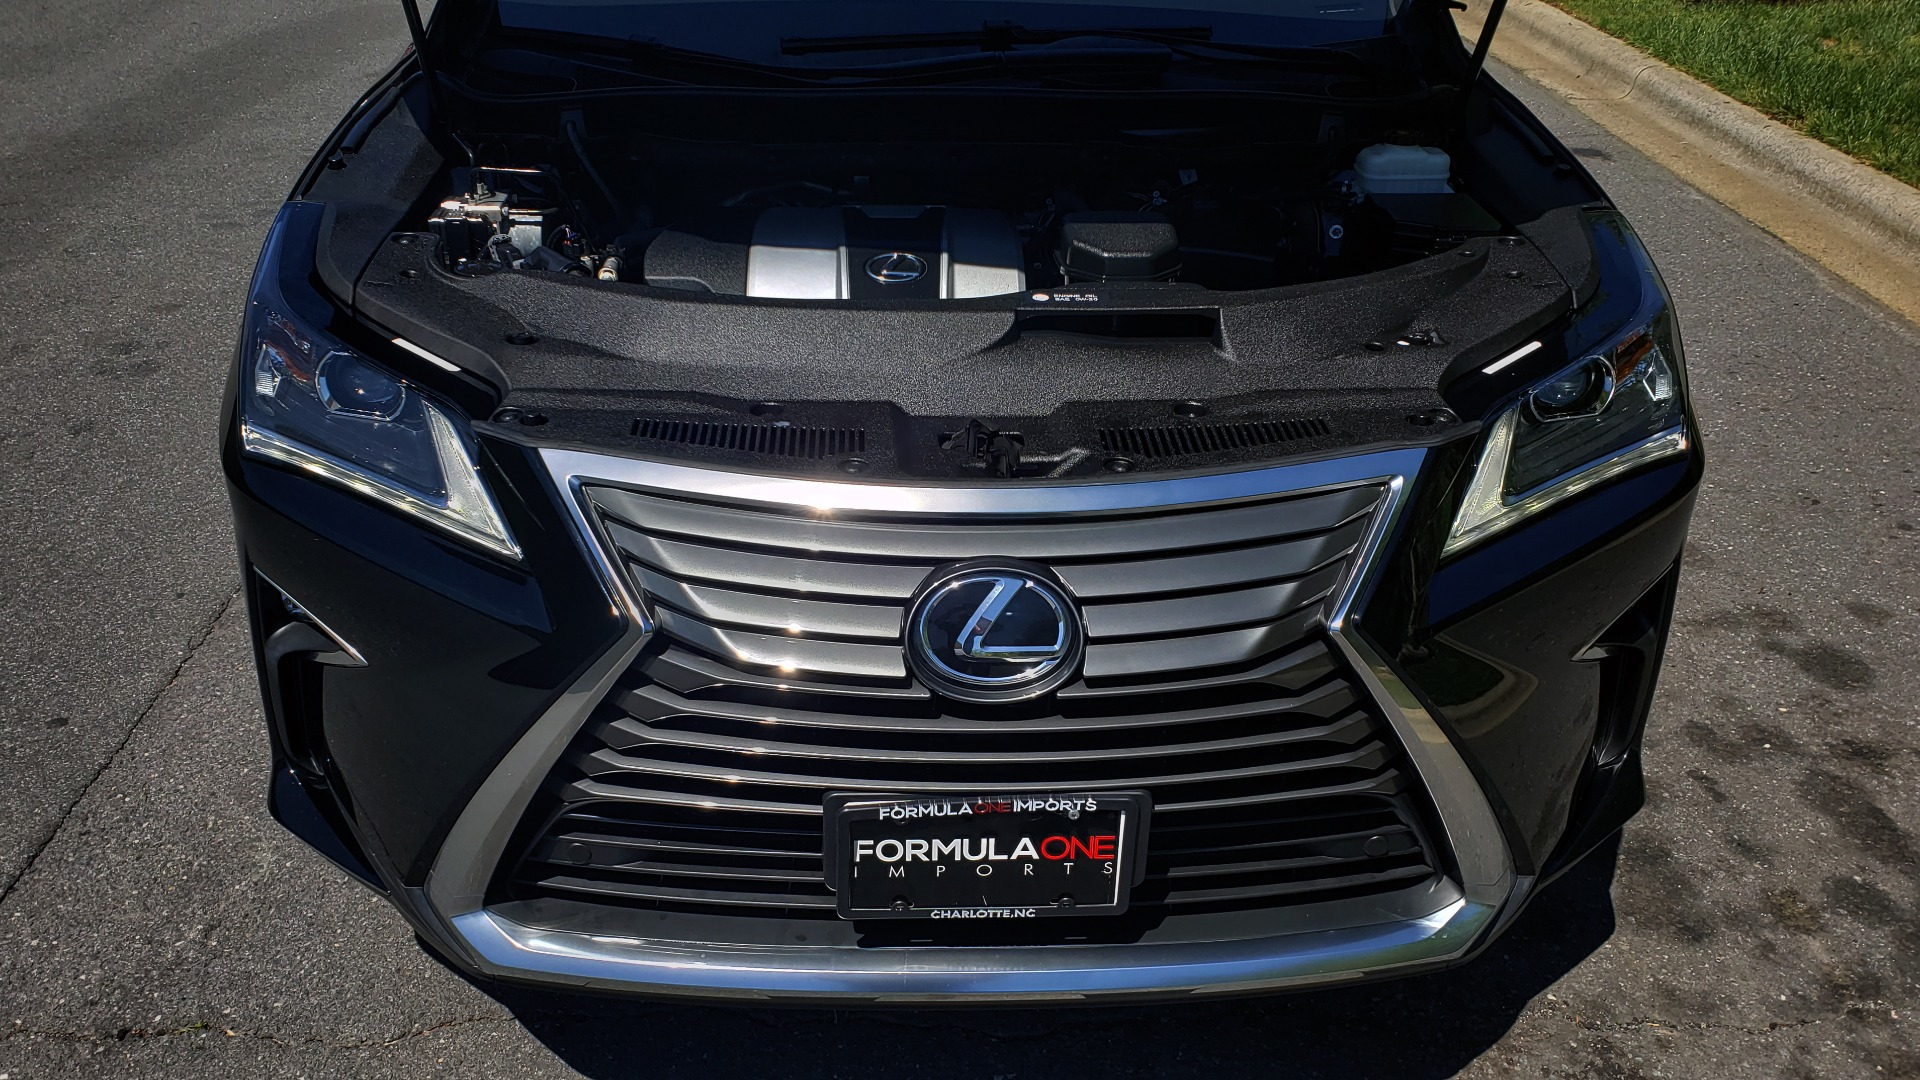 Used 2016 Lexus RX 350 PREMIUM / AWD / VENT SEATS / SUNROOF / BSM for sale Sold at Formula Imports in Charlotte NC 28227 10